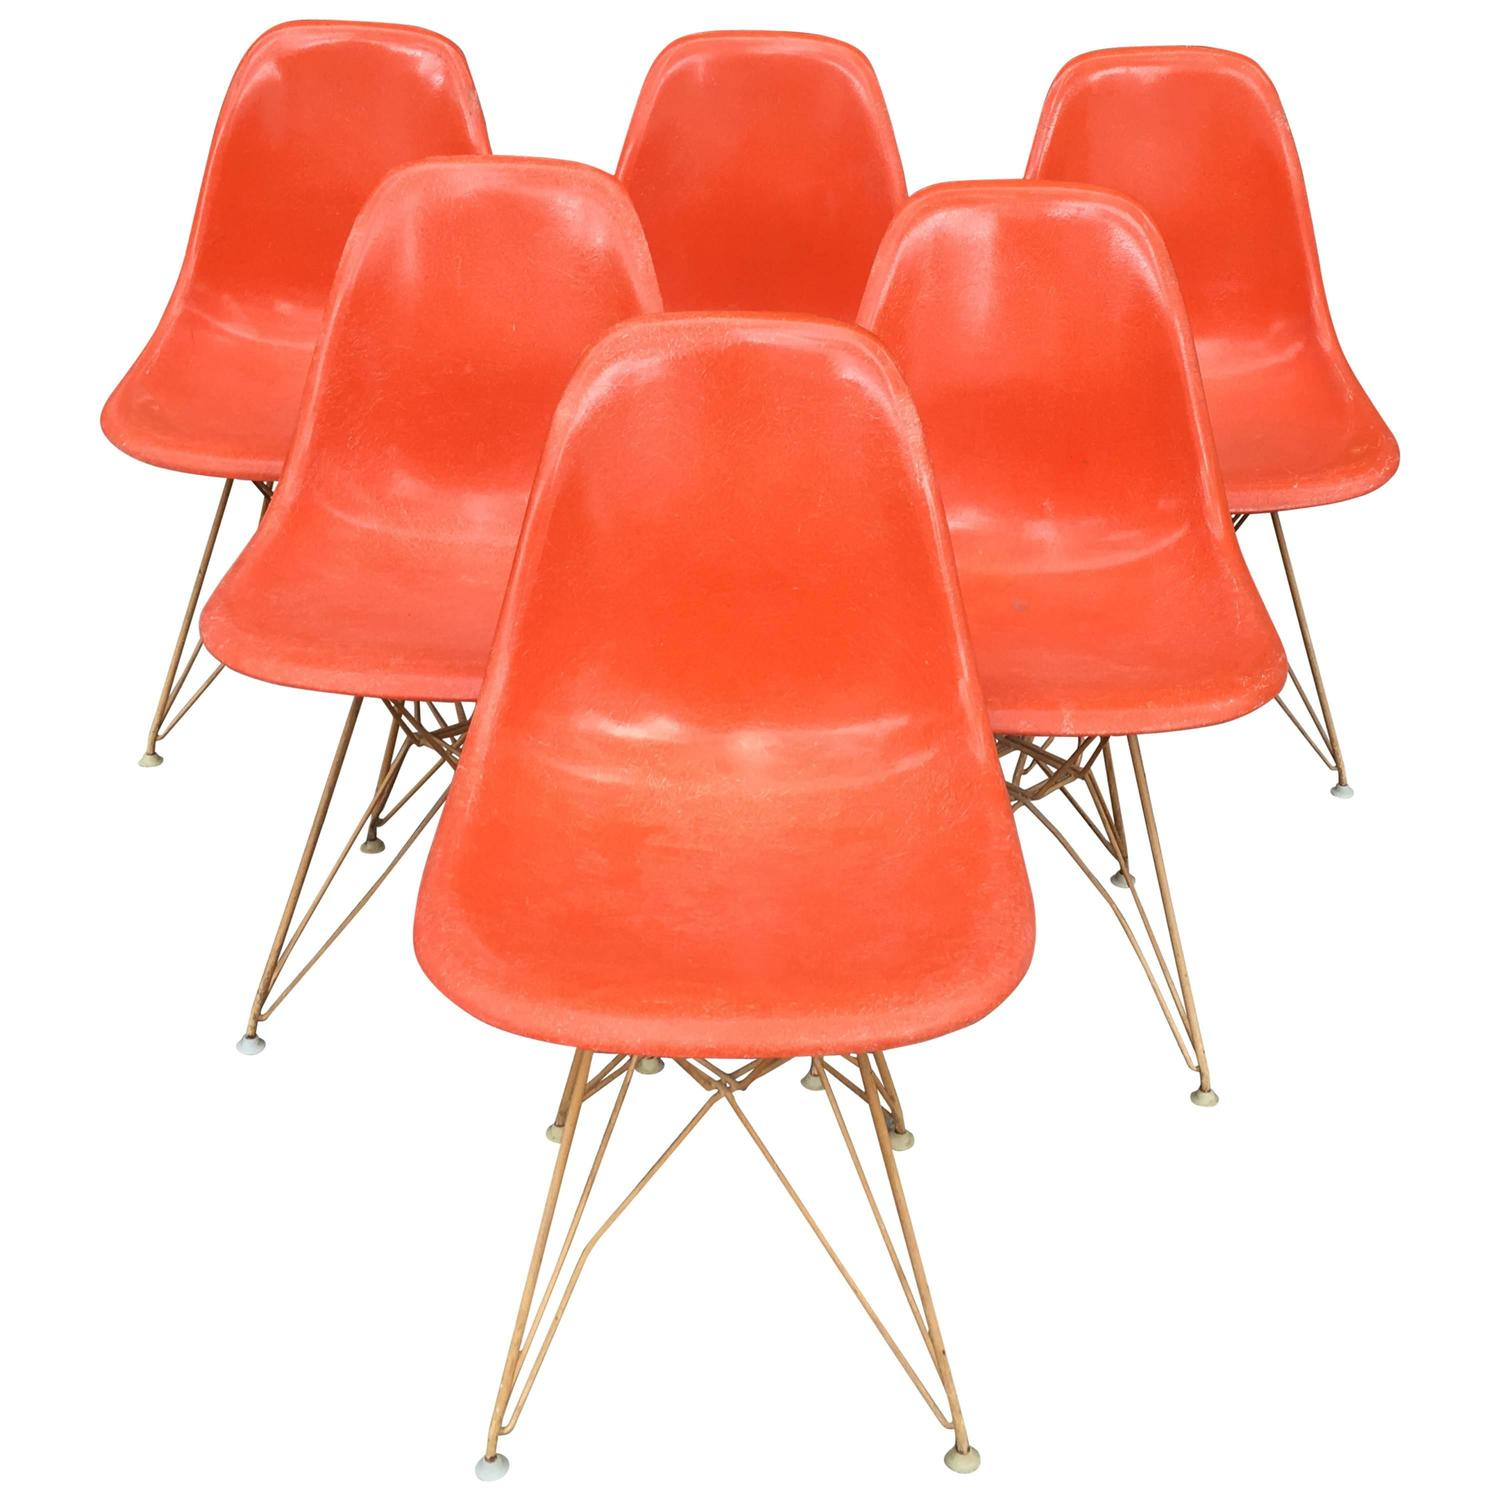 Charles And Ray Eames Set Of Six Eiffel Tower Chairs Herman Miller 1960 At